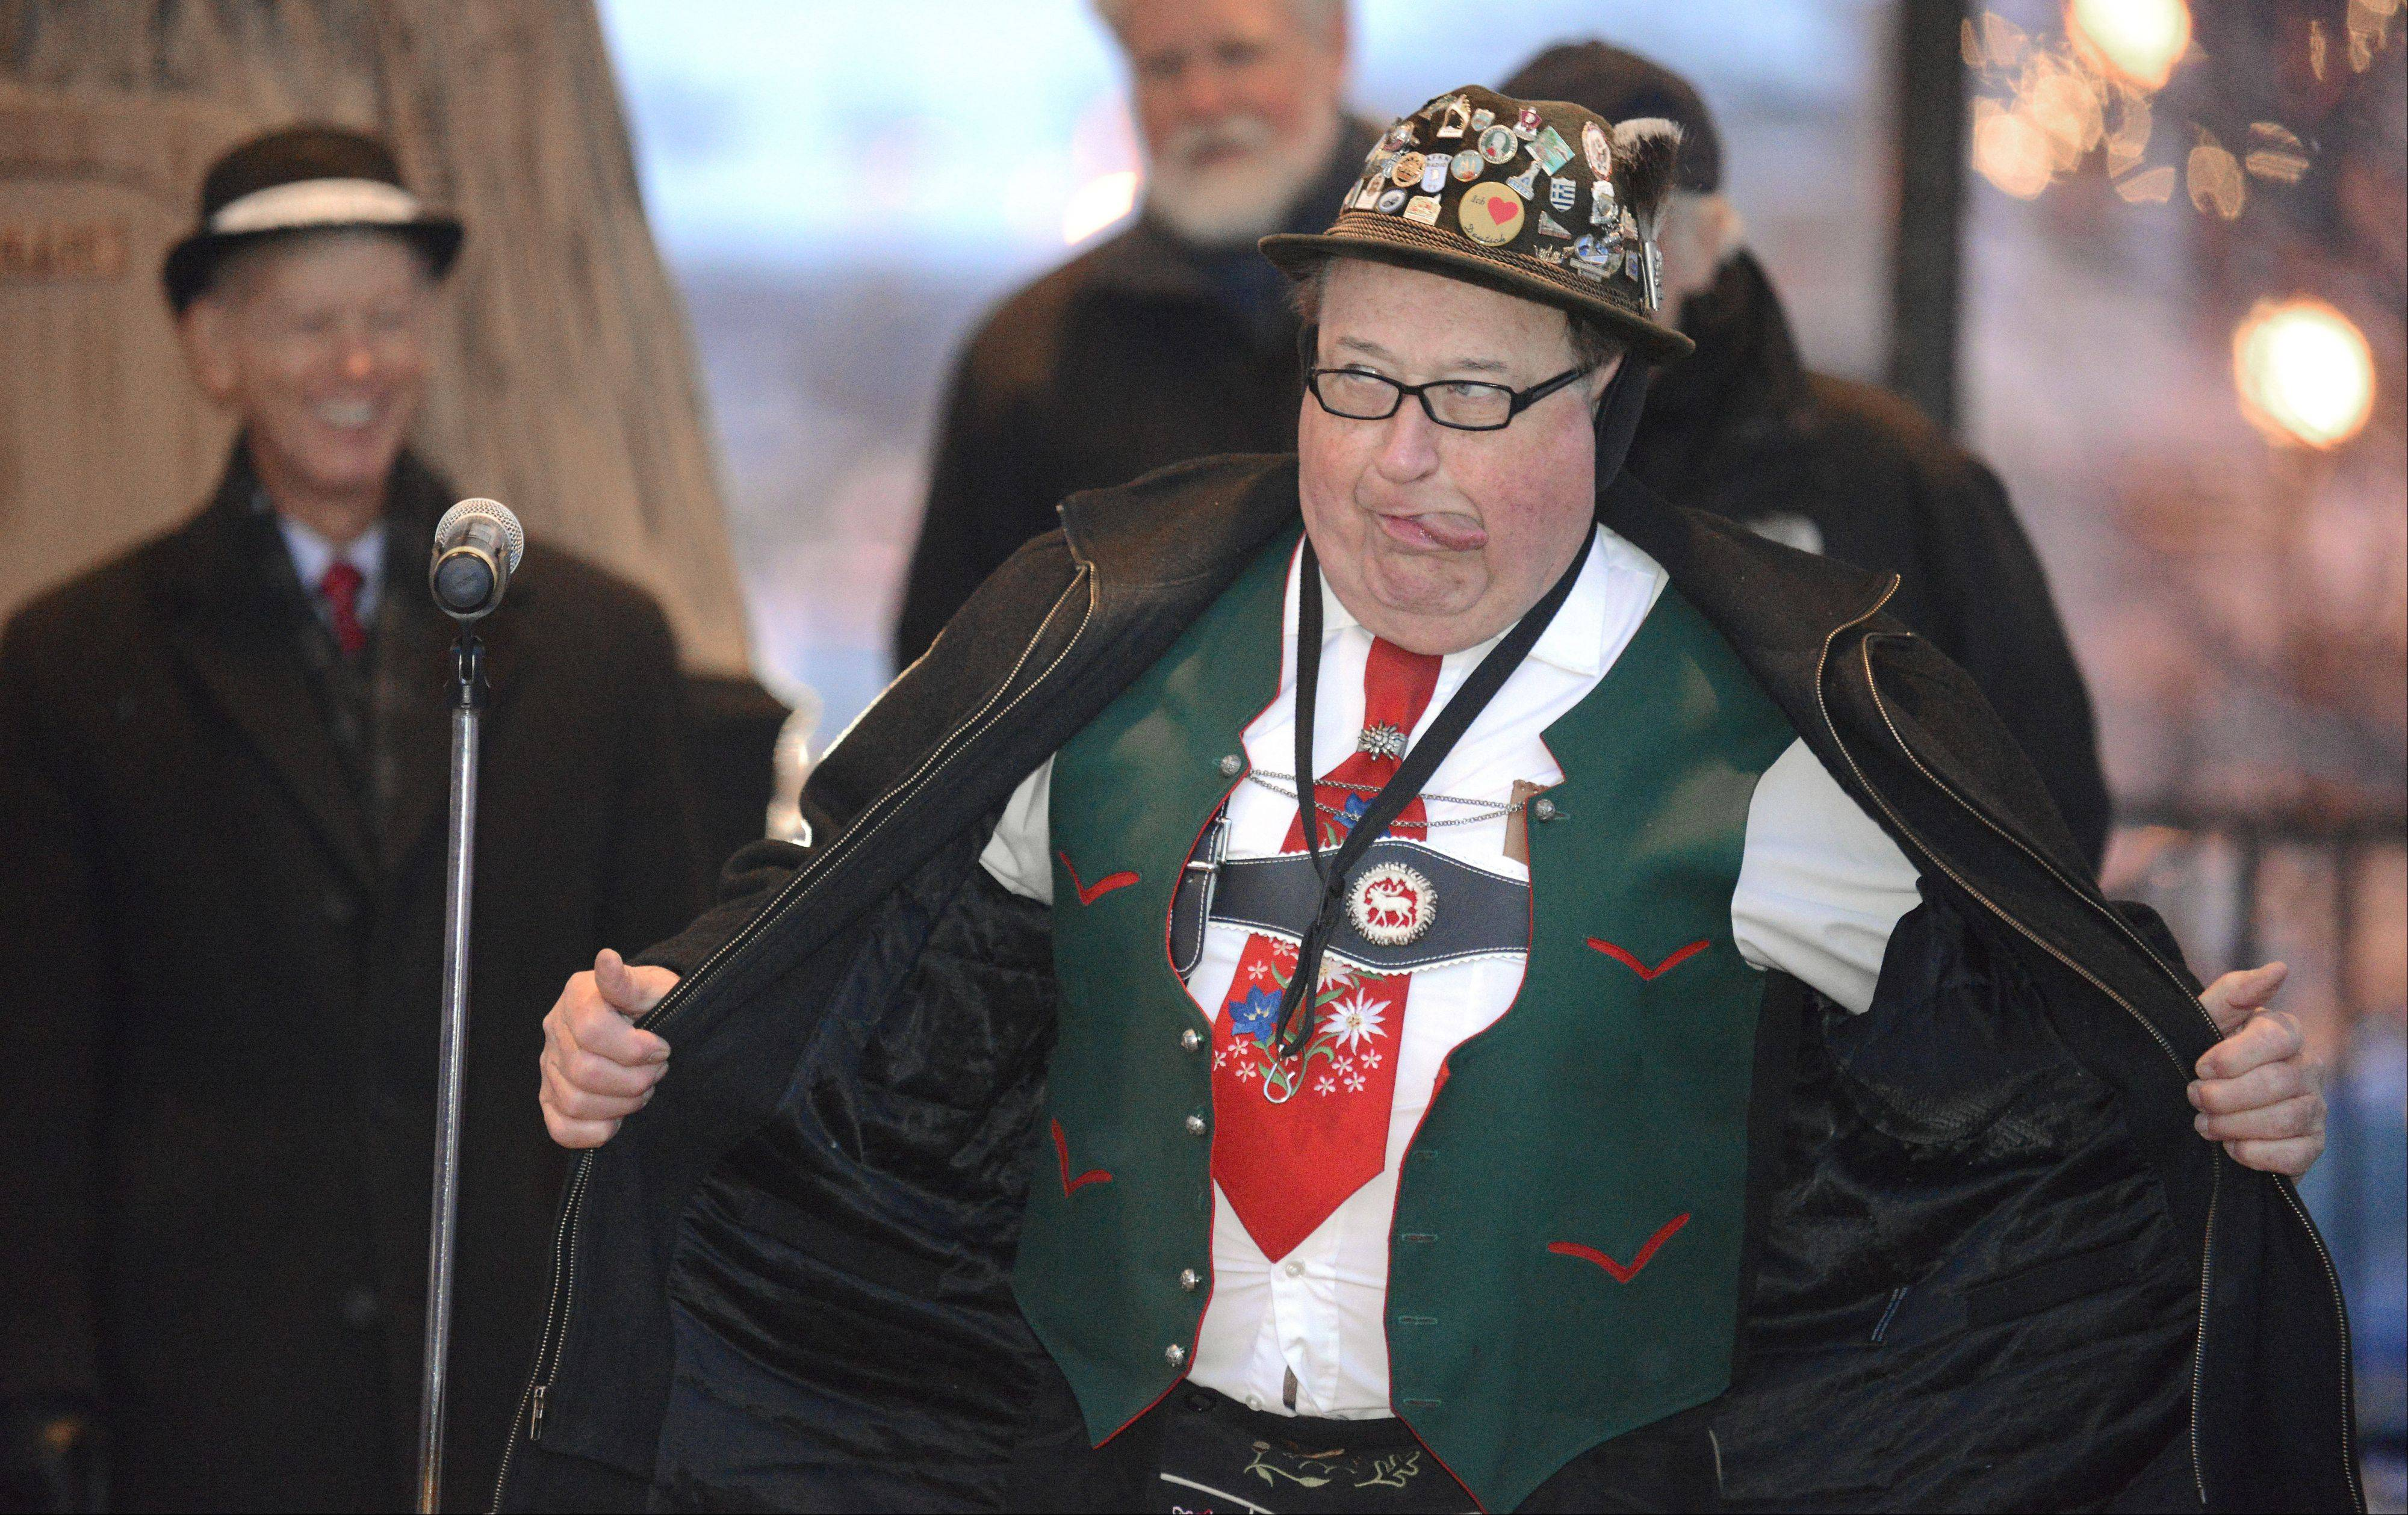 Mike Delaney of Elmhurst, with the German trio music group The Alpiners, gives a quick showing of his lederhosen before bundling up again against the cold at Woodstock's Groundhog Day celebration Saturday. They've performed at the event for eight years.